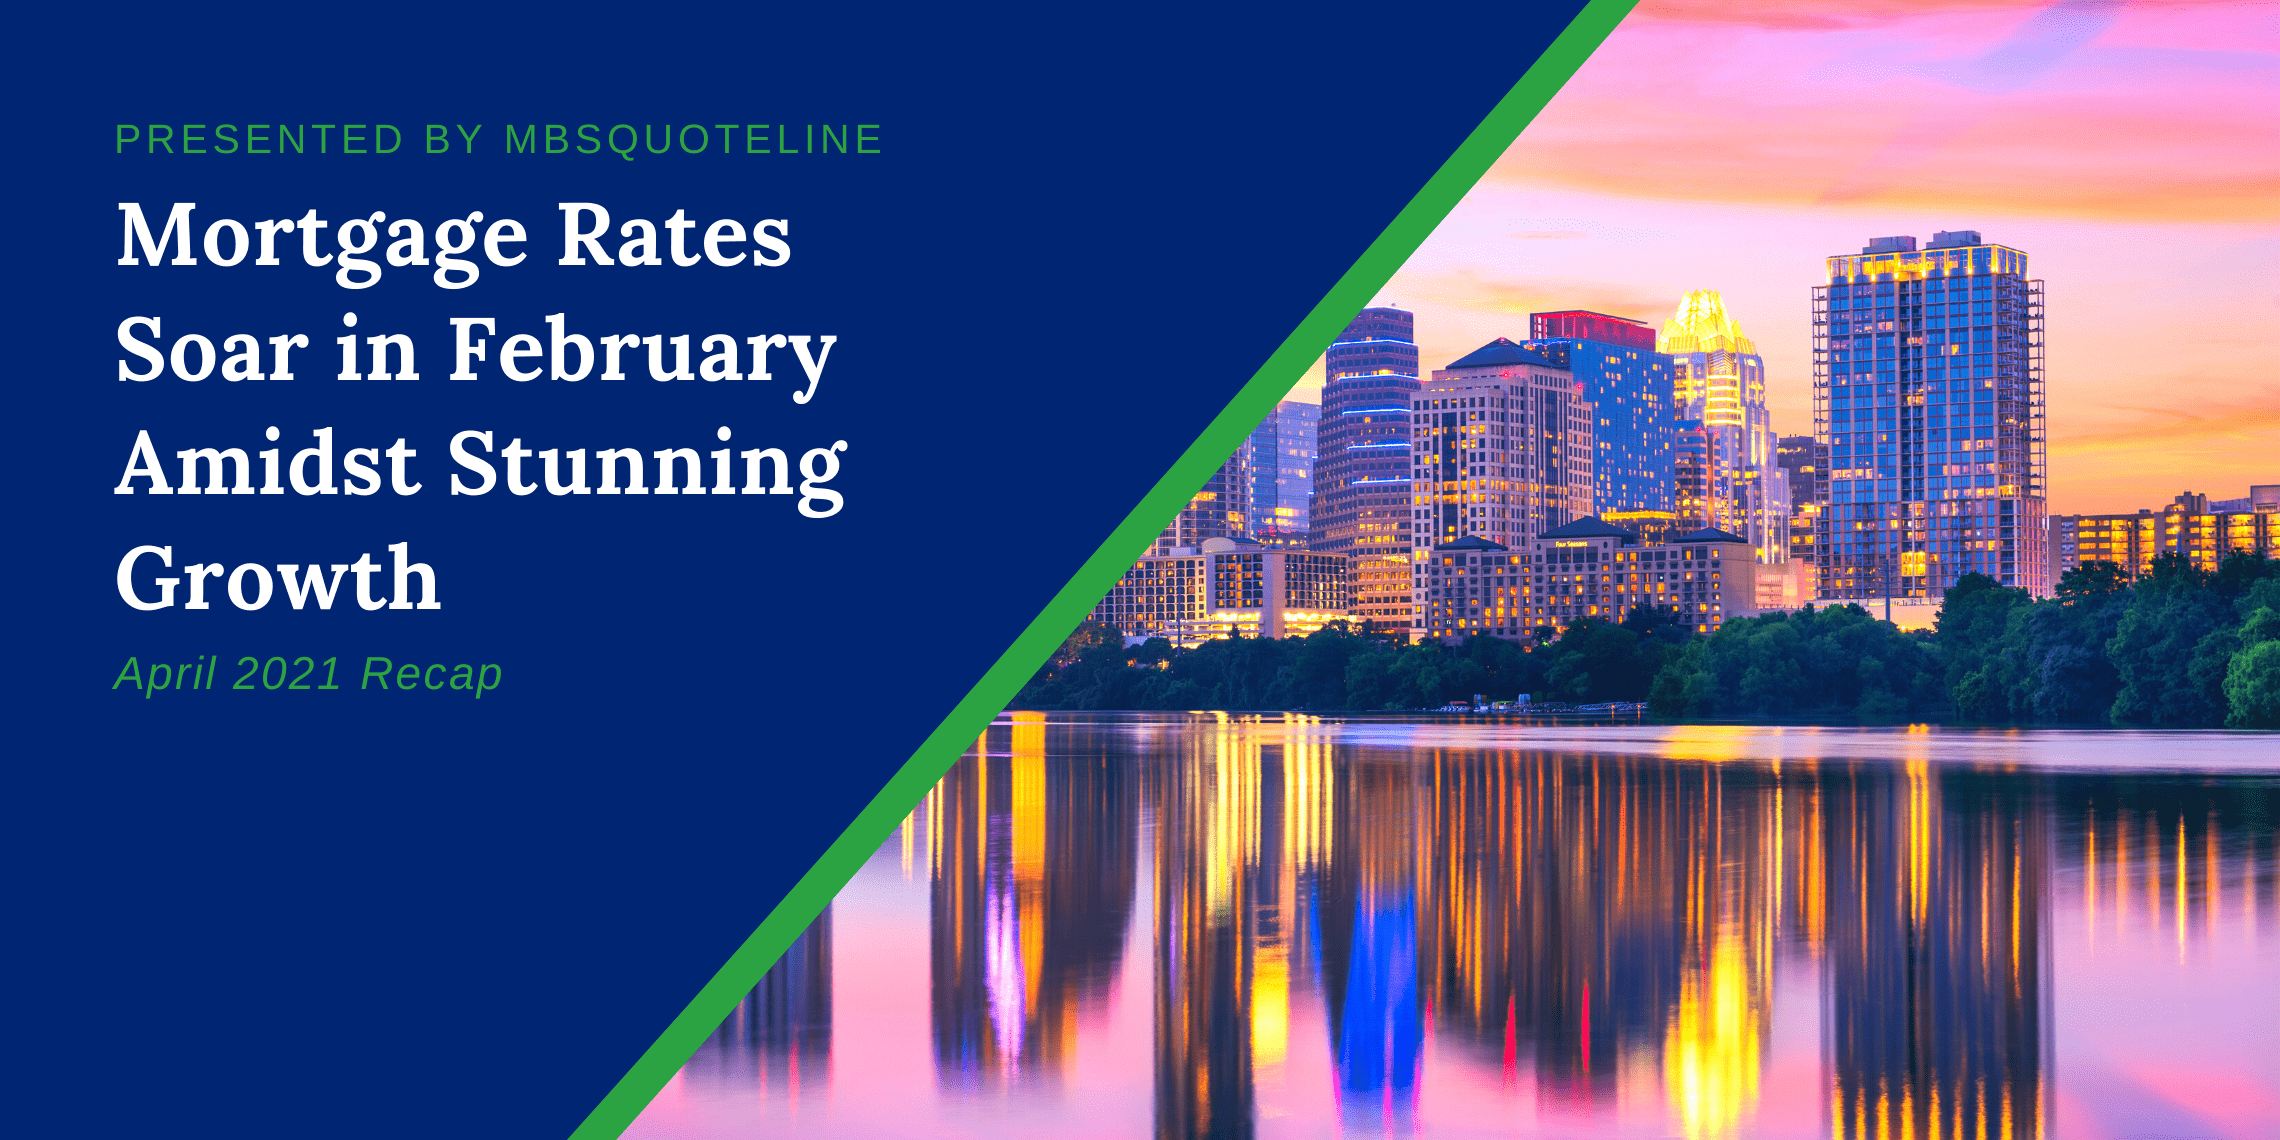 Mortgage Rates Soar February Amidst Stunning Growth April 2021 Recap MBSQuoteline